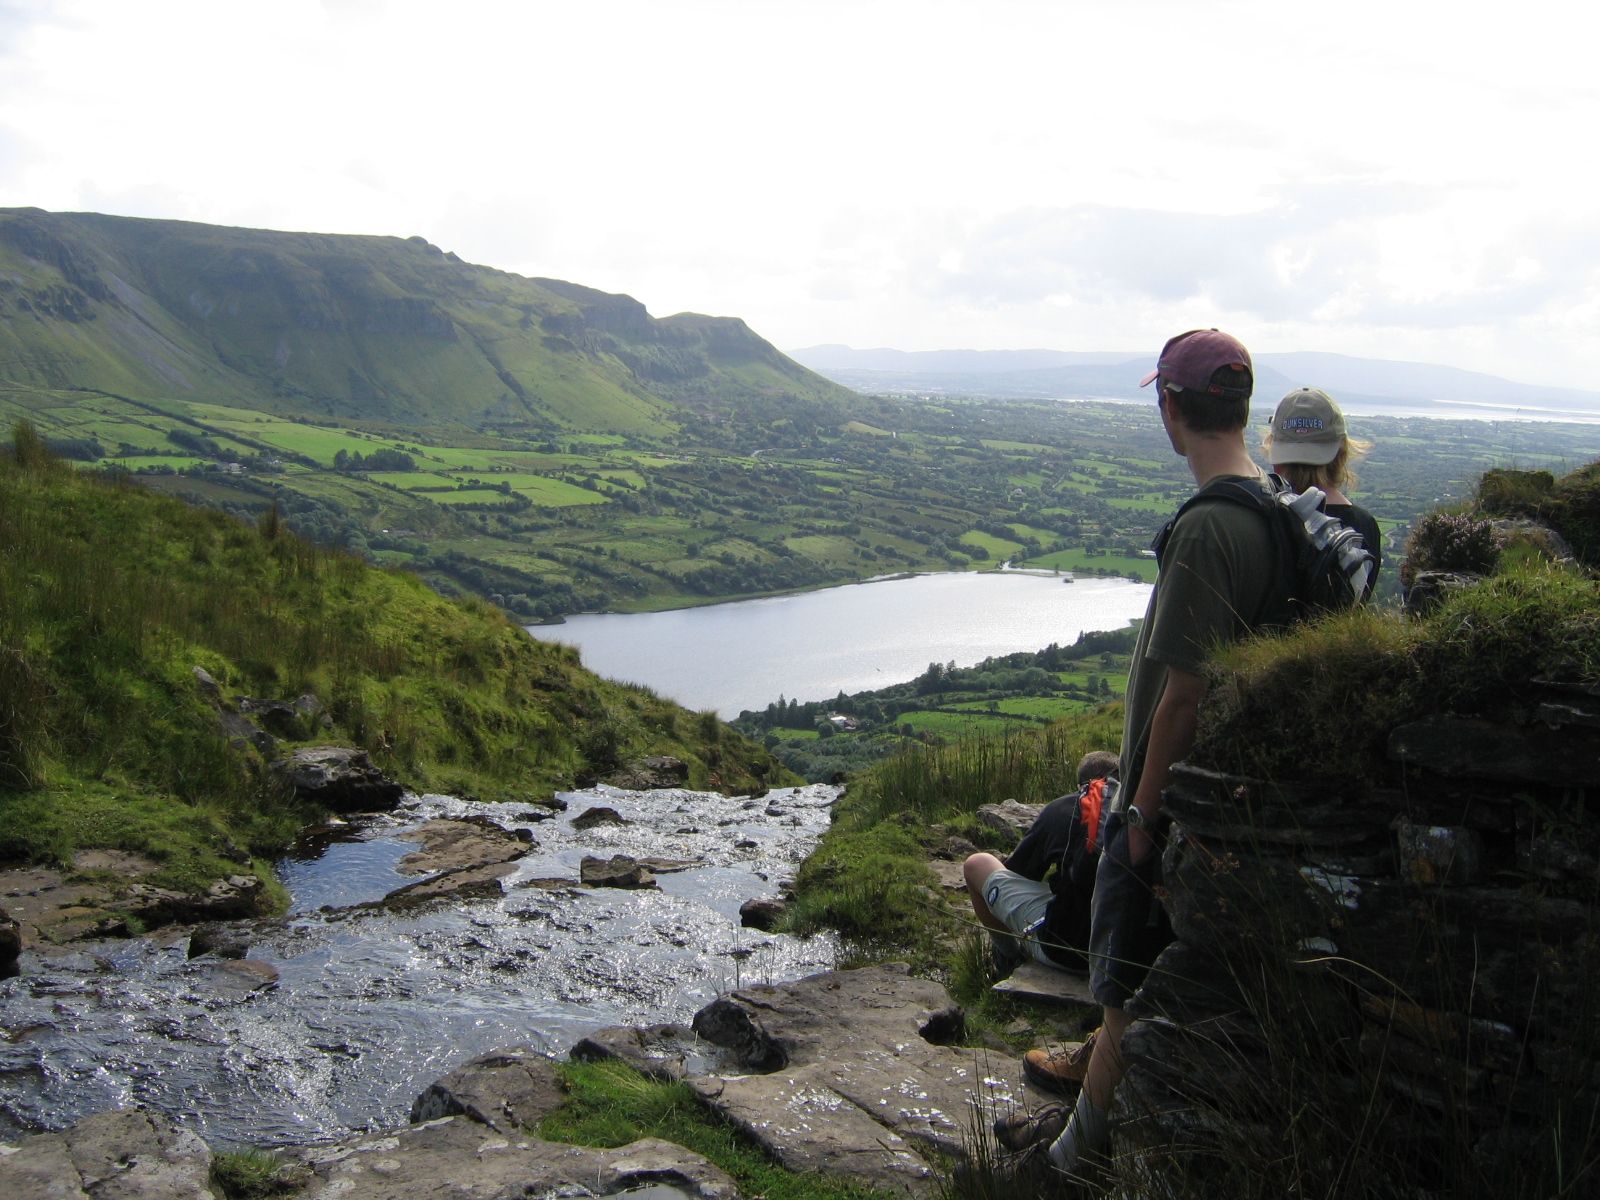 Looking down on Glencar Lake on route to the Barytes Mines